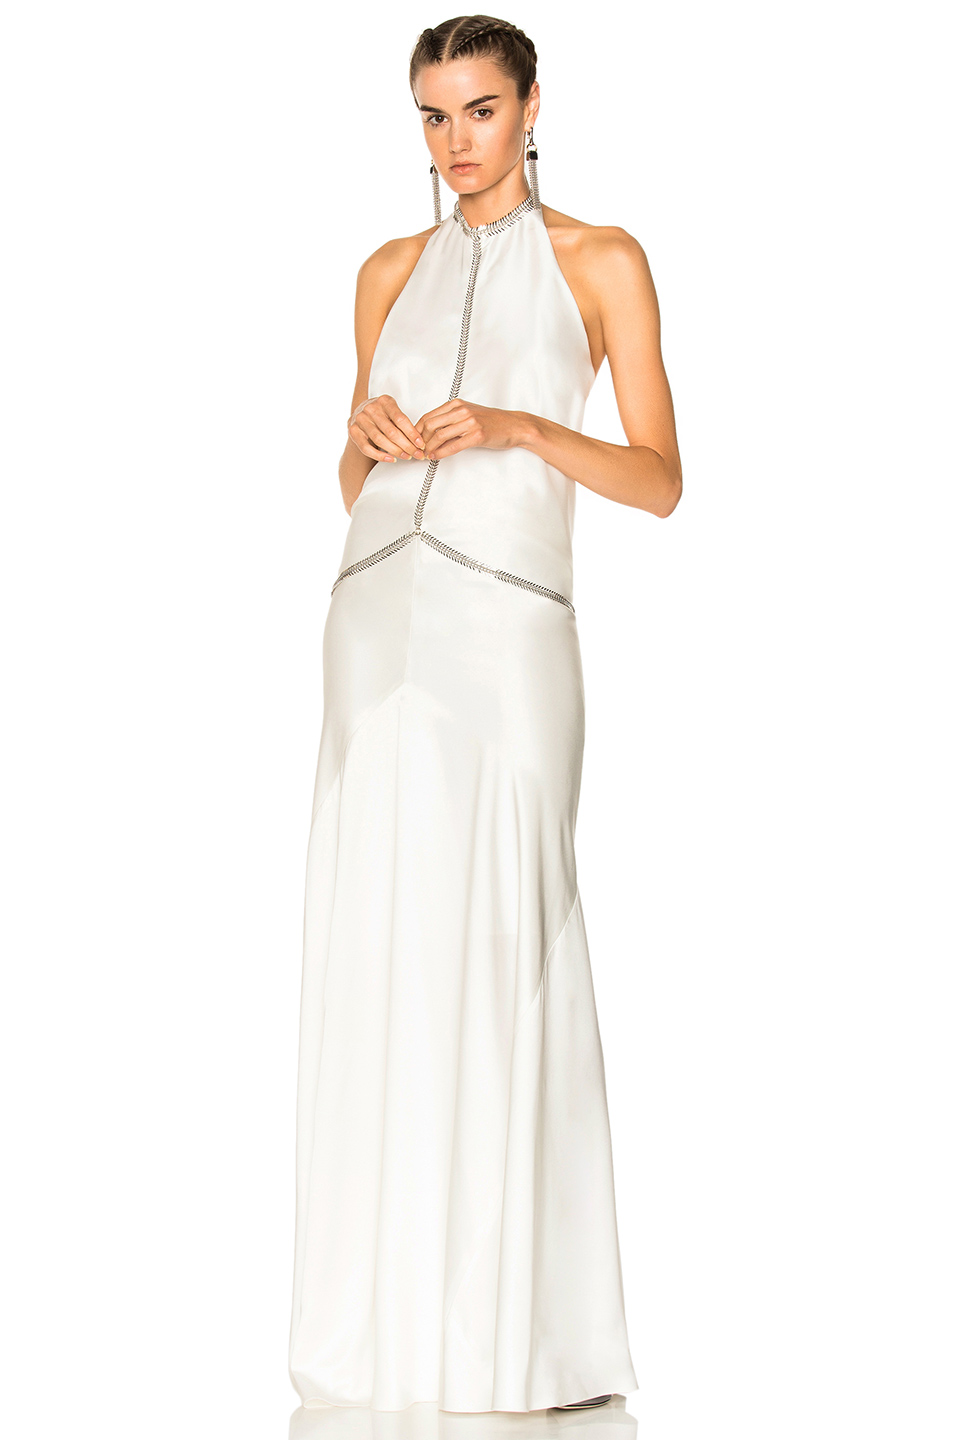 Alexander Wang Backless Gown in White